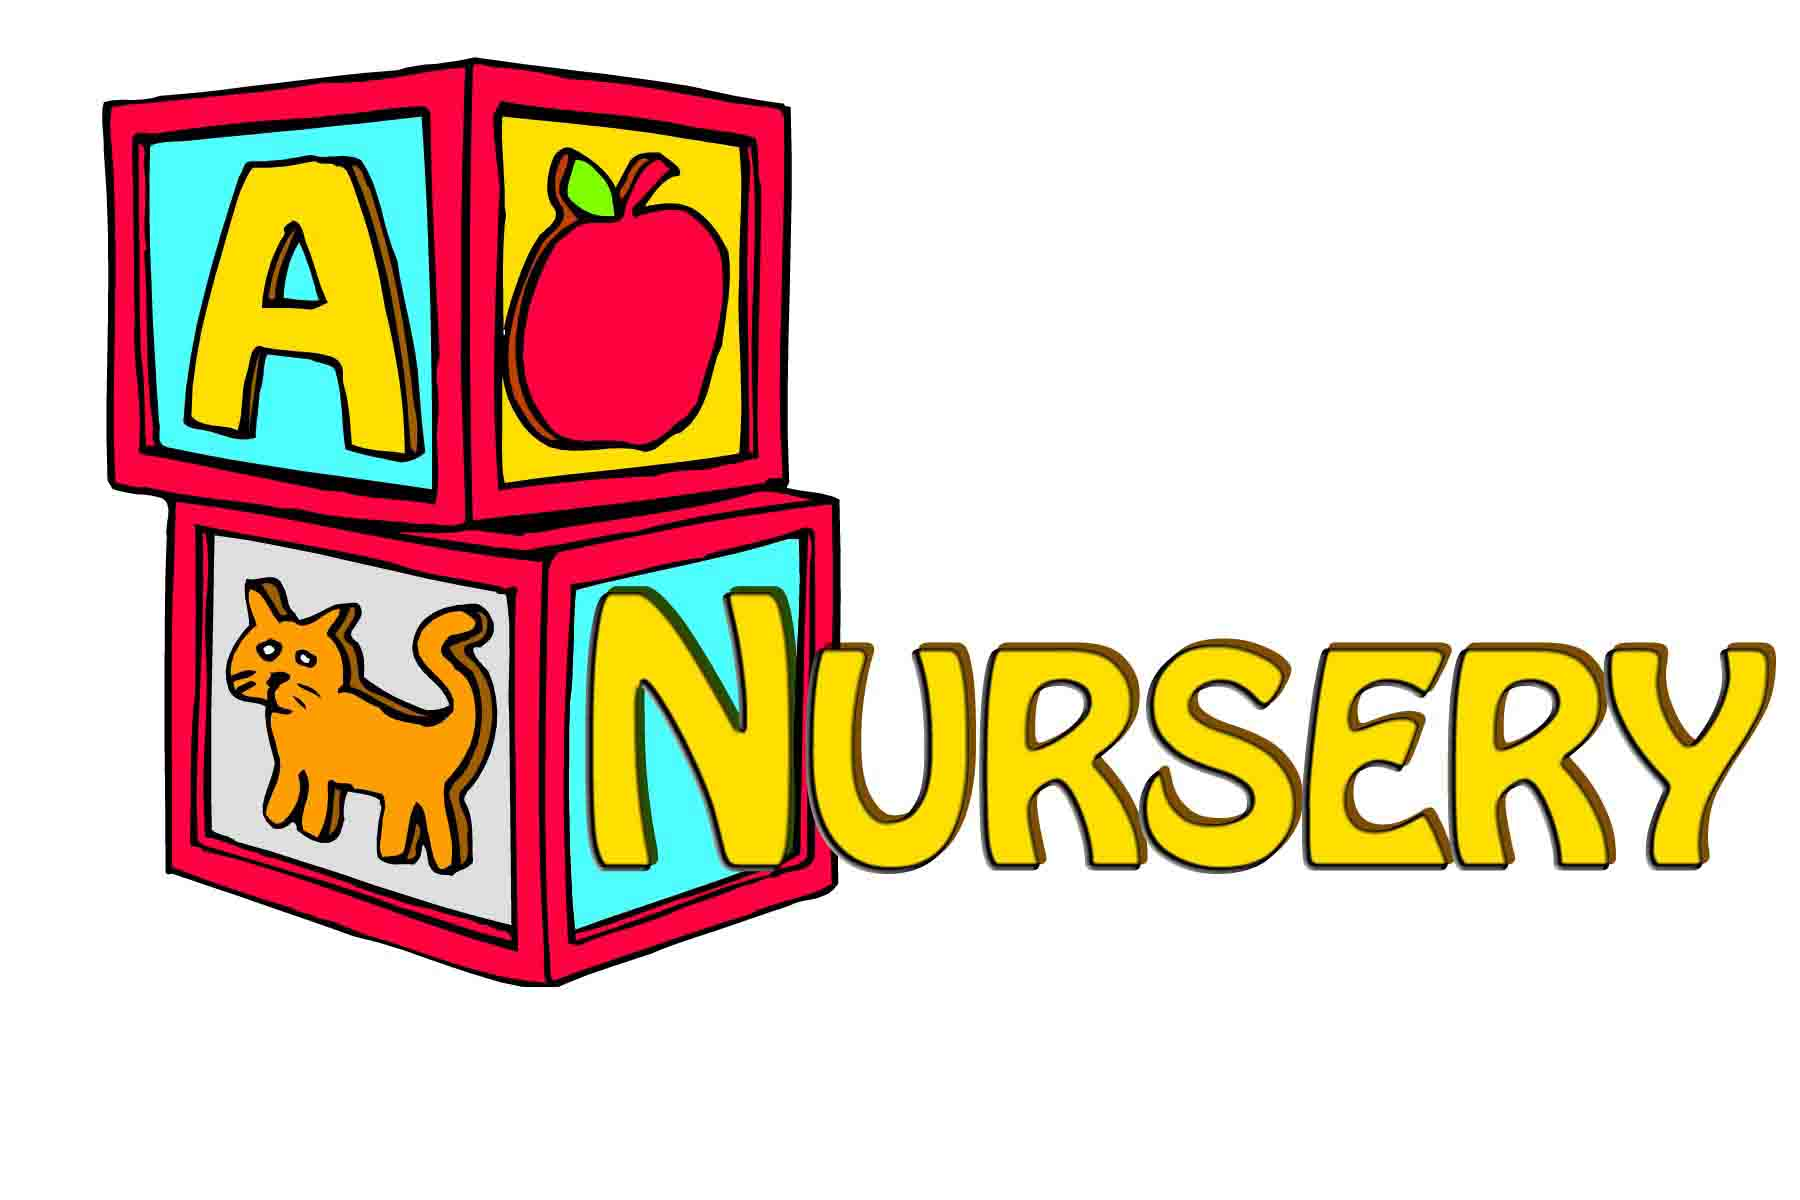 New Nursery Program